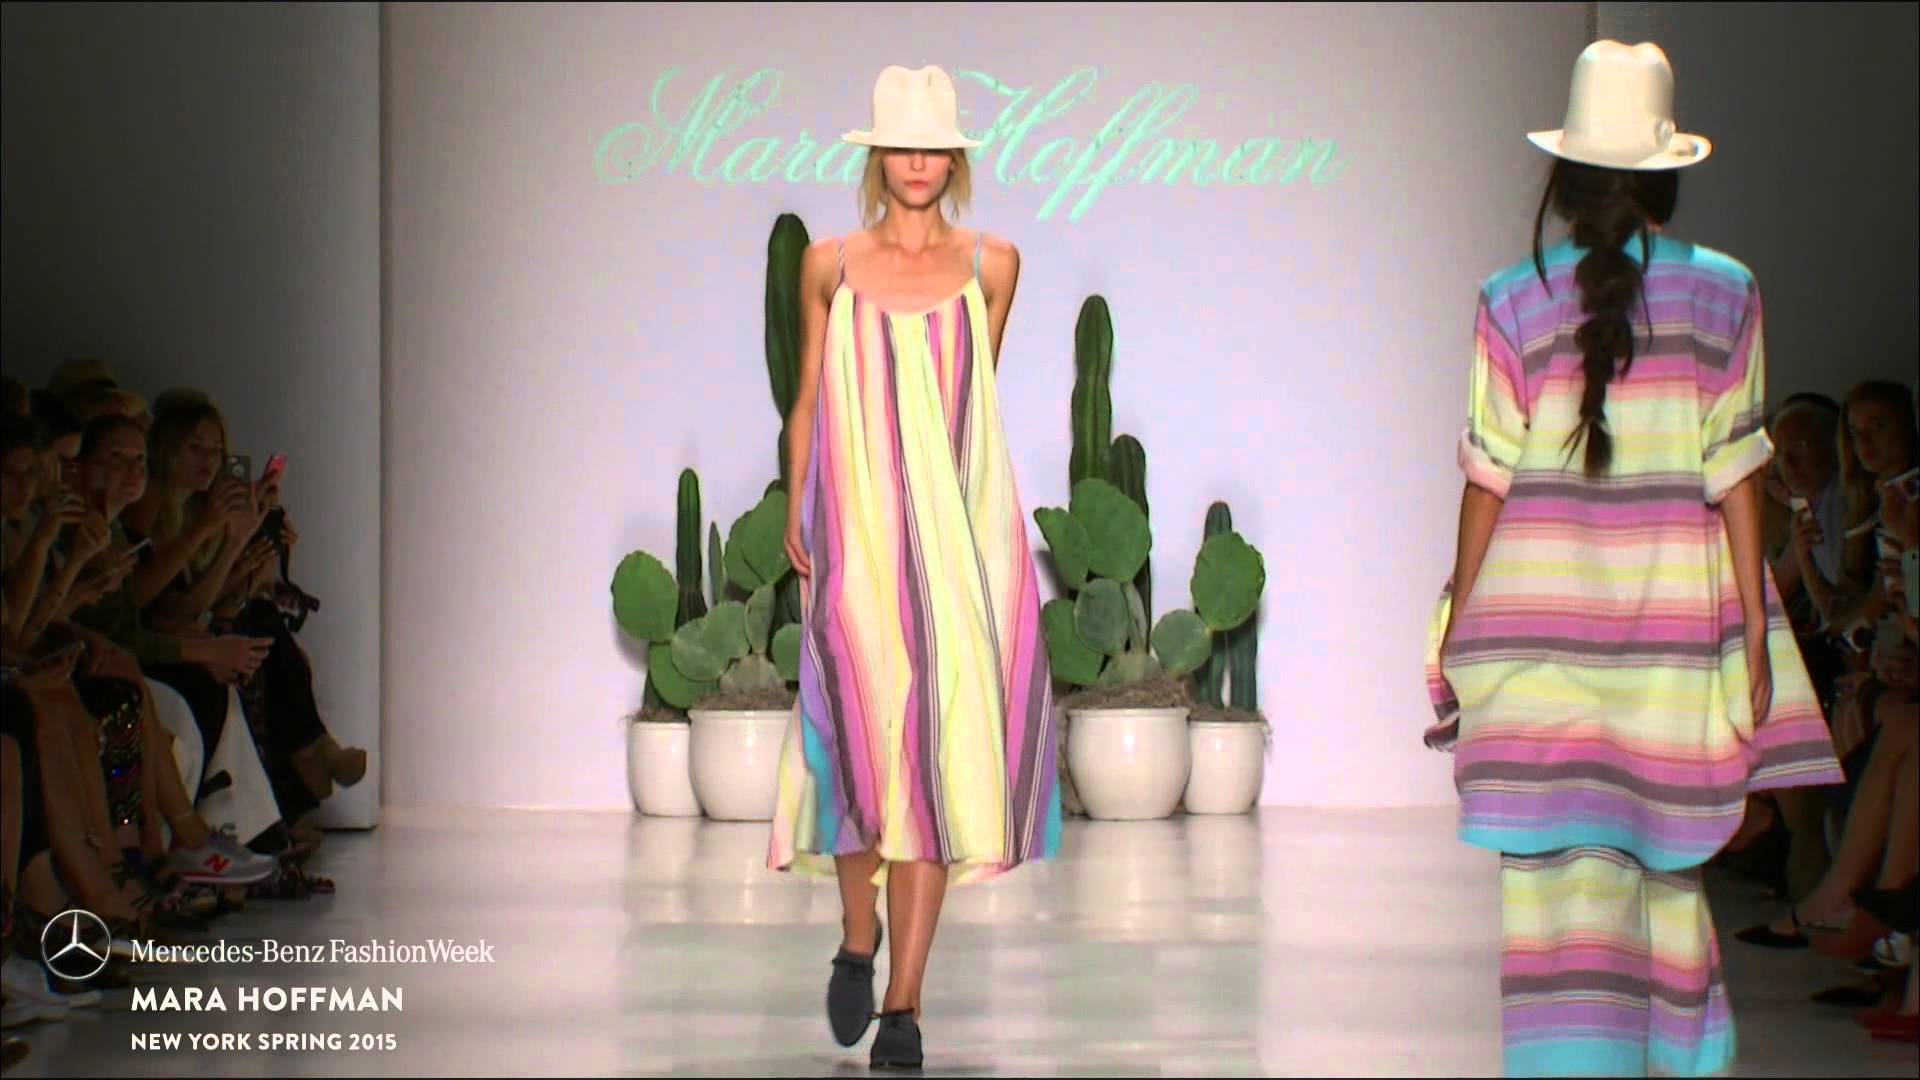 MARA HOFFMAN: MERCEDES-BENZ FASHION WEEK S/S15 COLLECTIONS